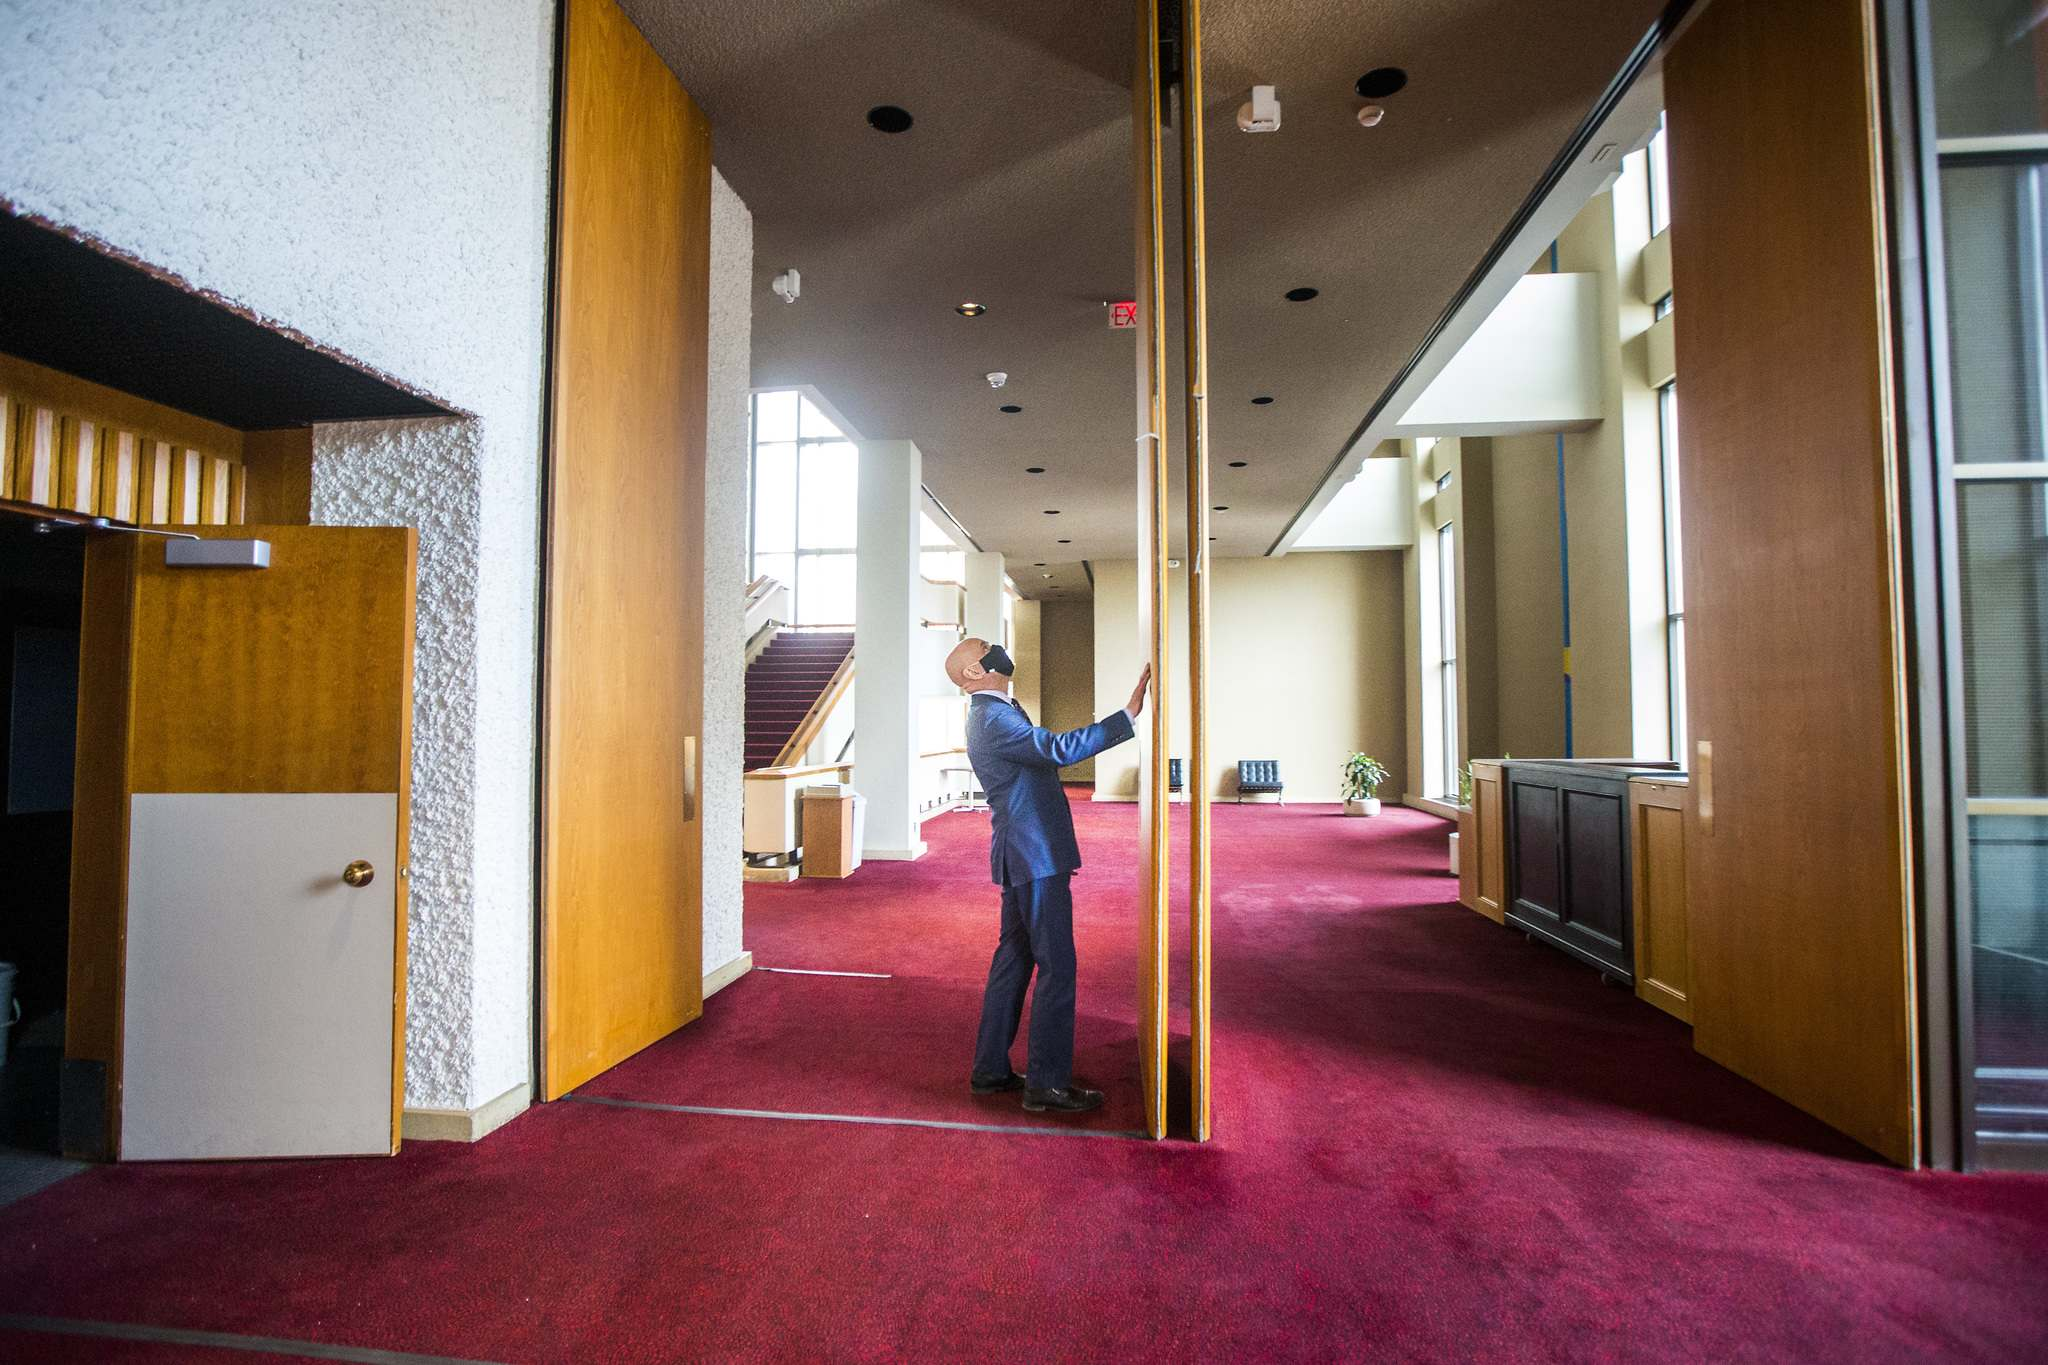 Martin Kull, general manager of the Centennial Concert Hall, is looking forward to the return of live performances. The concert hall is undergoing extensive renovations during the pandemic shutdown. (Mikaela MacKenzie / Winnipeg Free Press)</p>